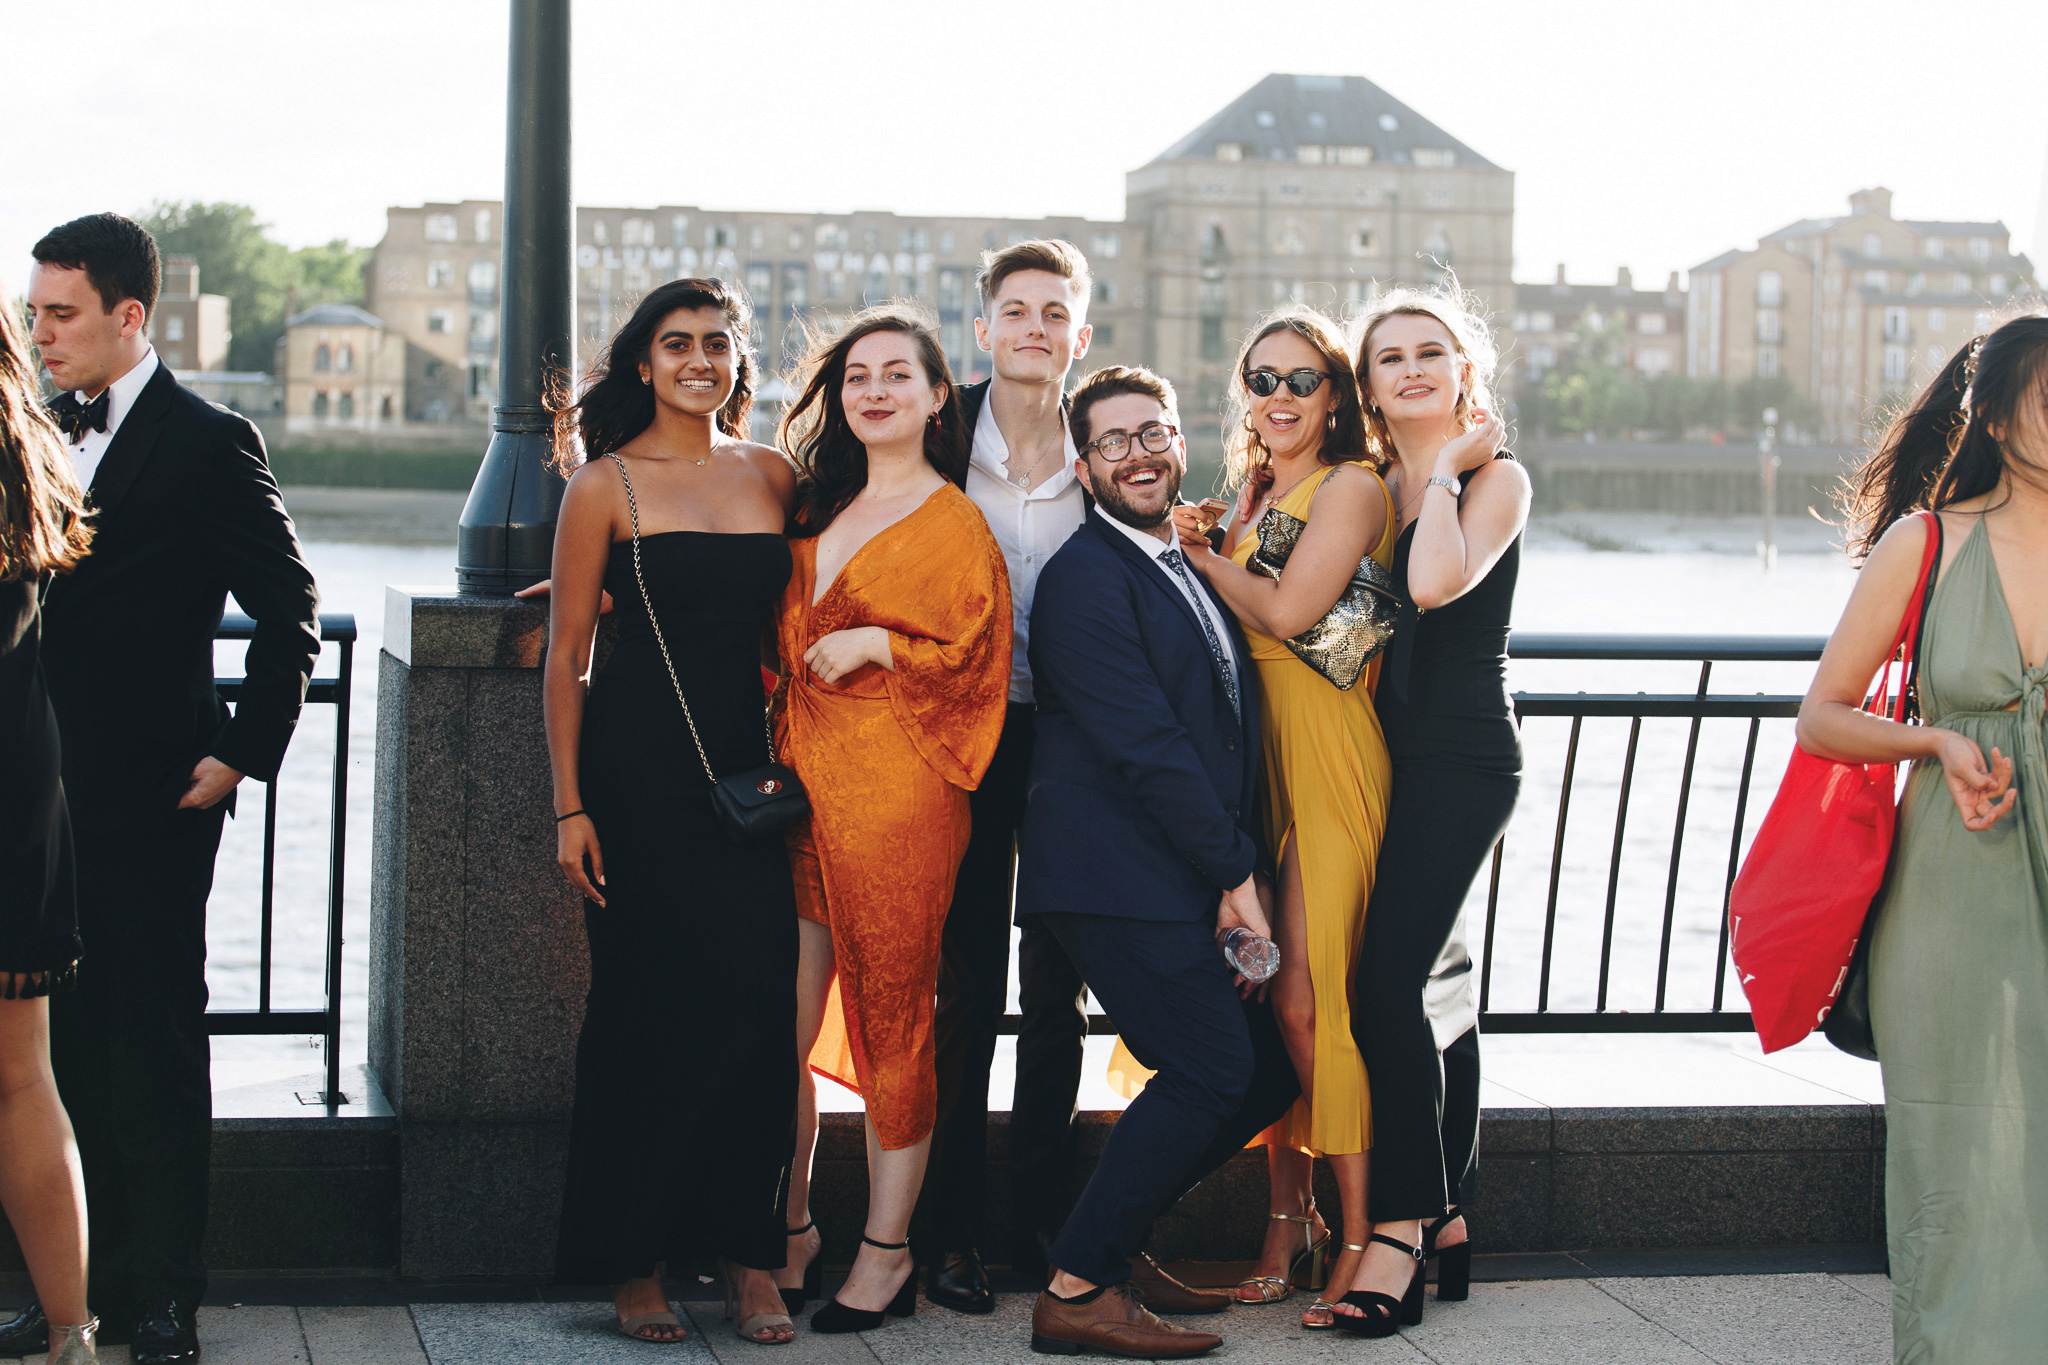 Freshers students standing by Thames River